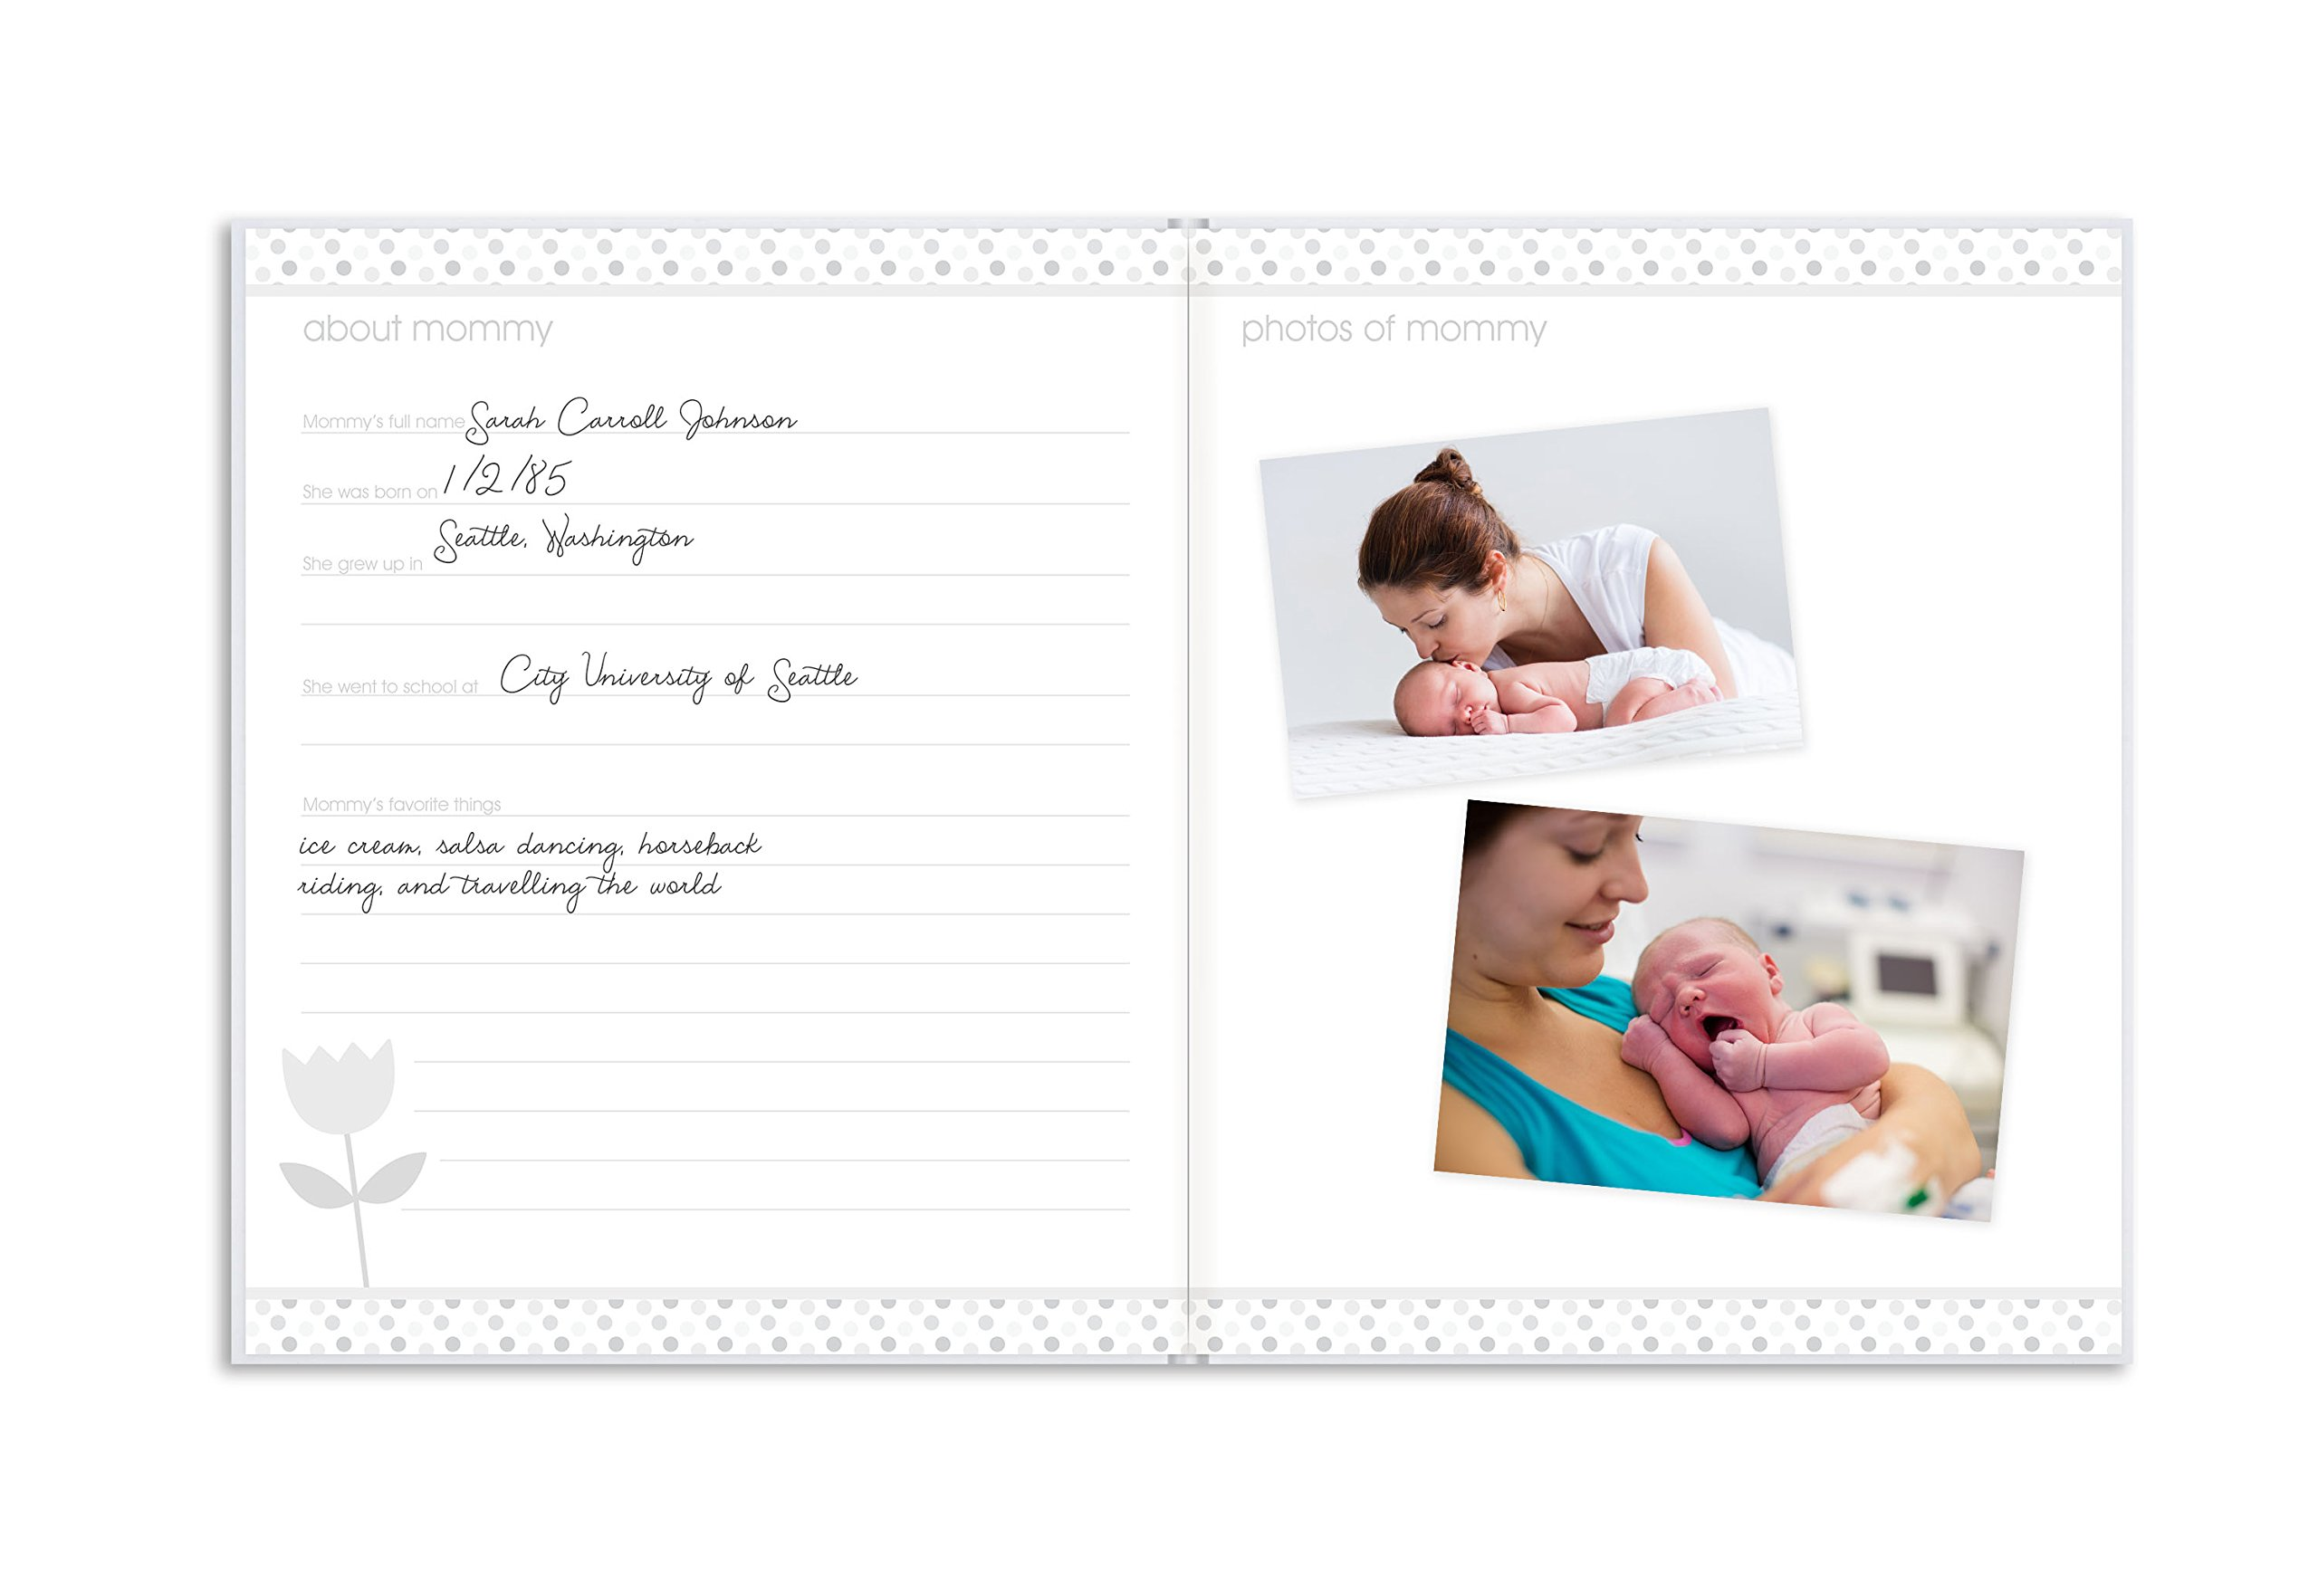 Pearhead First 5 Years Baby Memory Book with Sonogram Photo Insert, Black and Gold Polka Dot by Pearhead (Image #4)